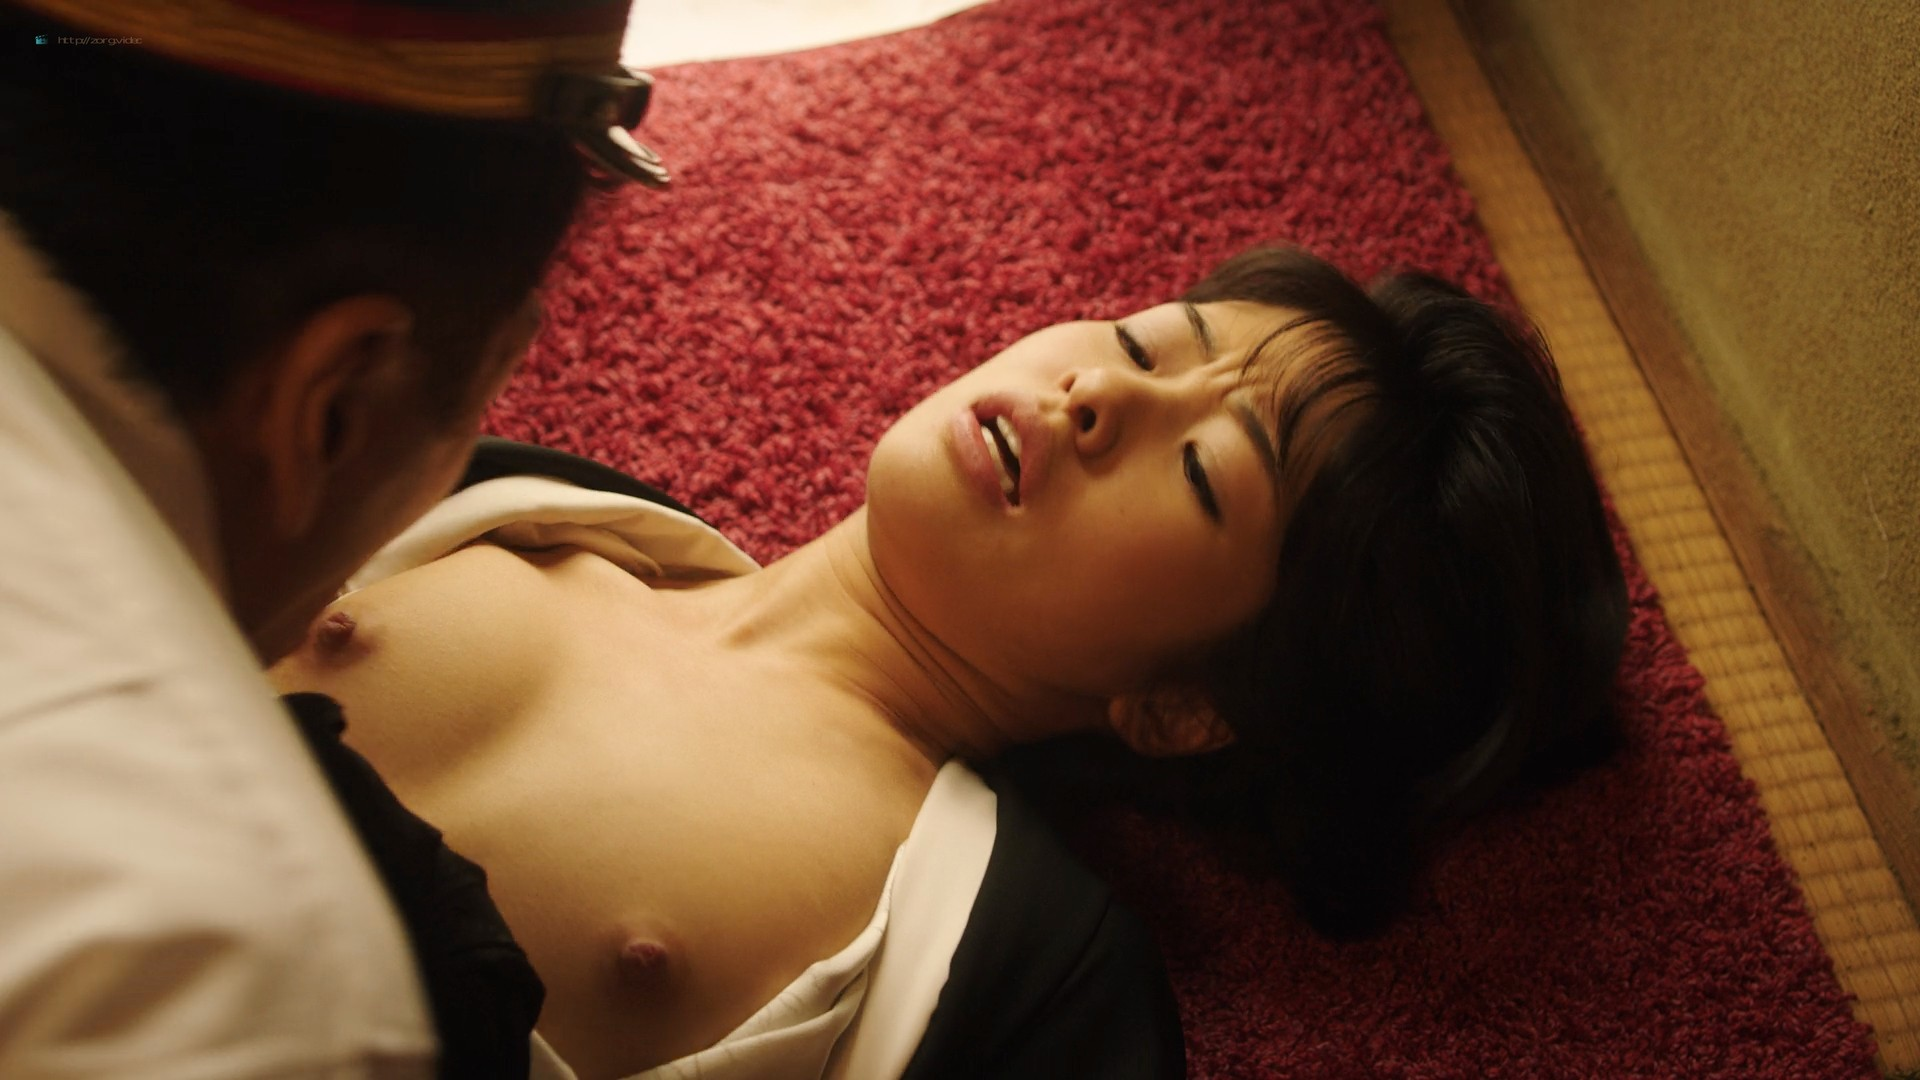 Nanami Kawakami nude and hot sex - The Naked Director (2019) s1e4 HD 1080p Web (7)